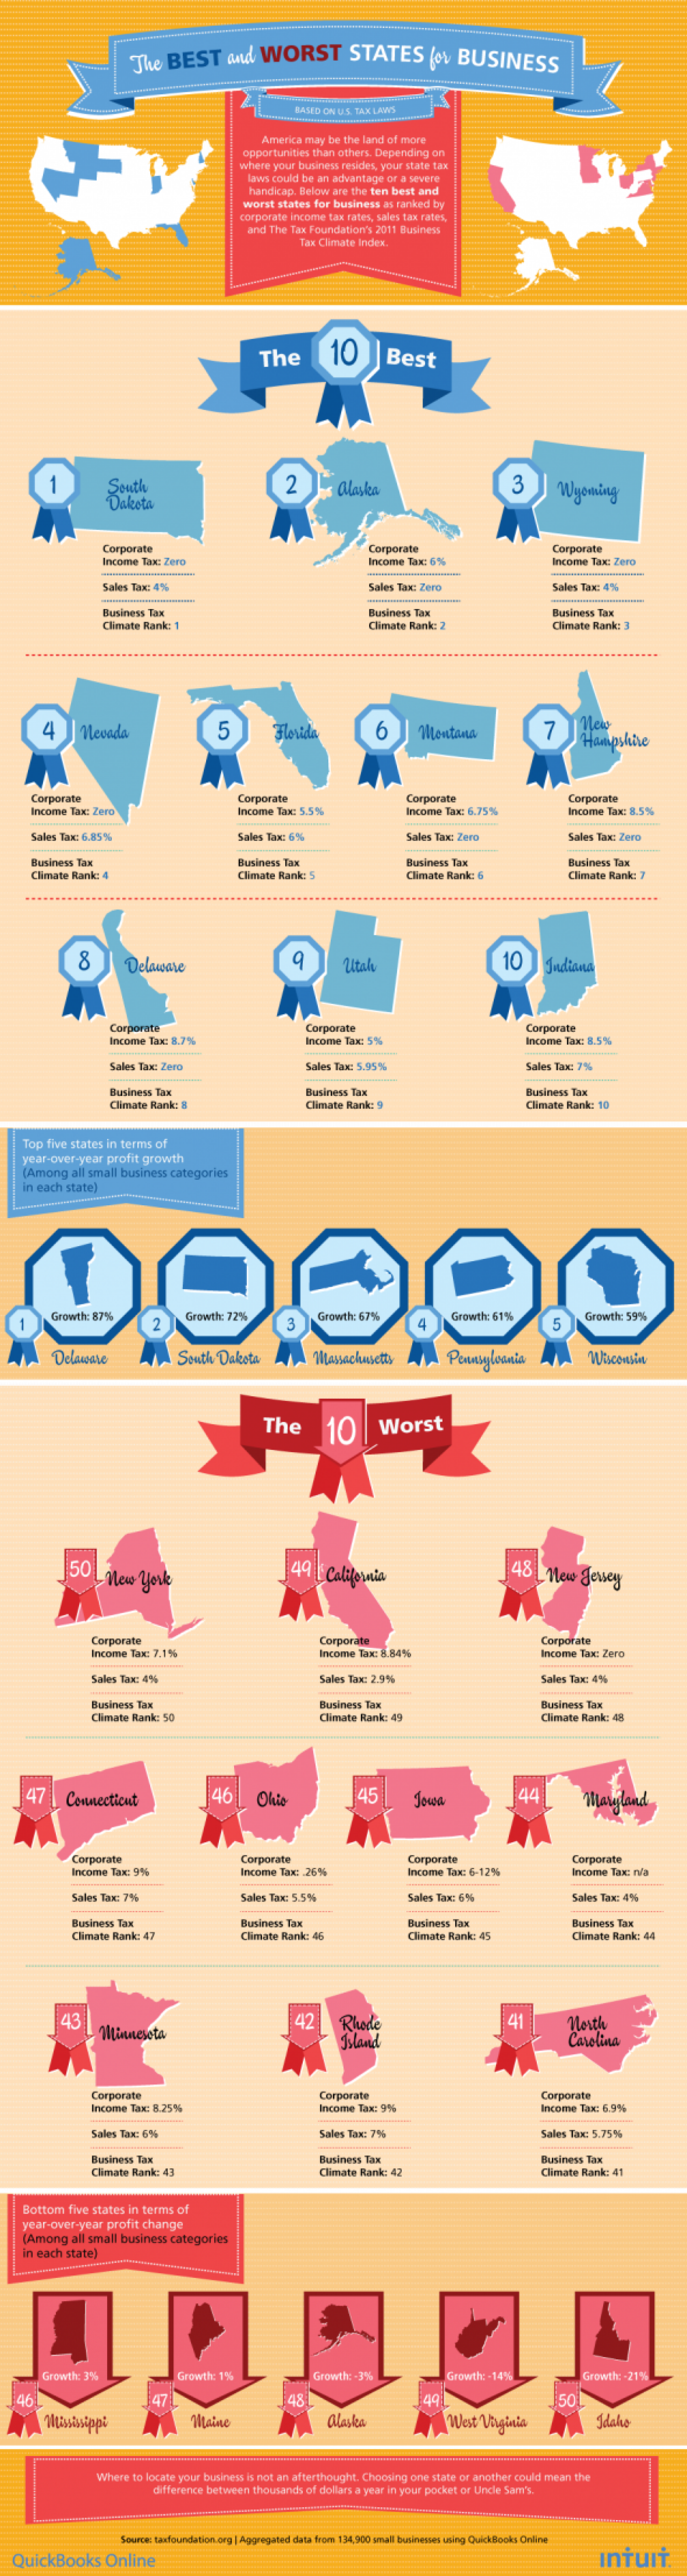 The Best and Worst States for Business  Infographic